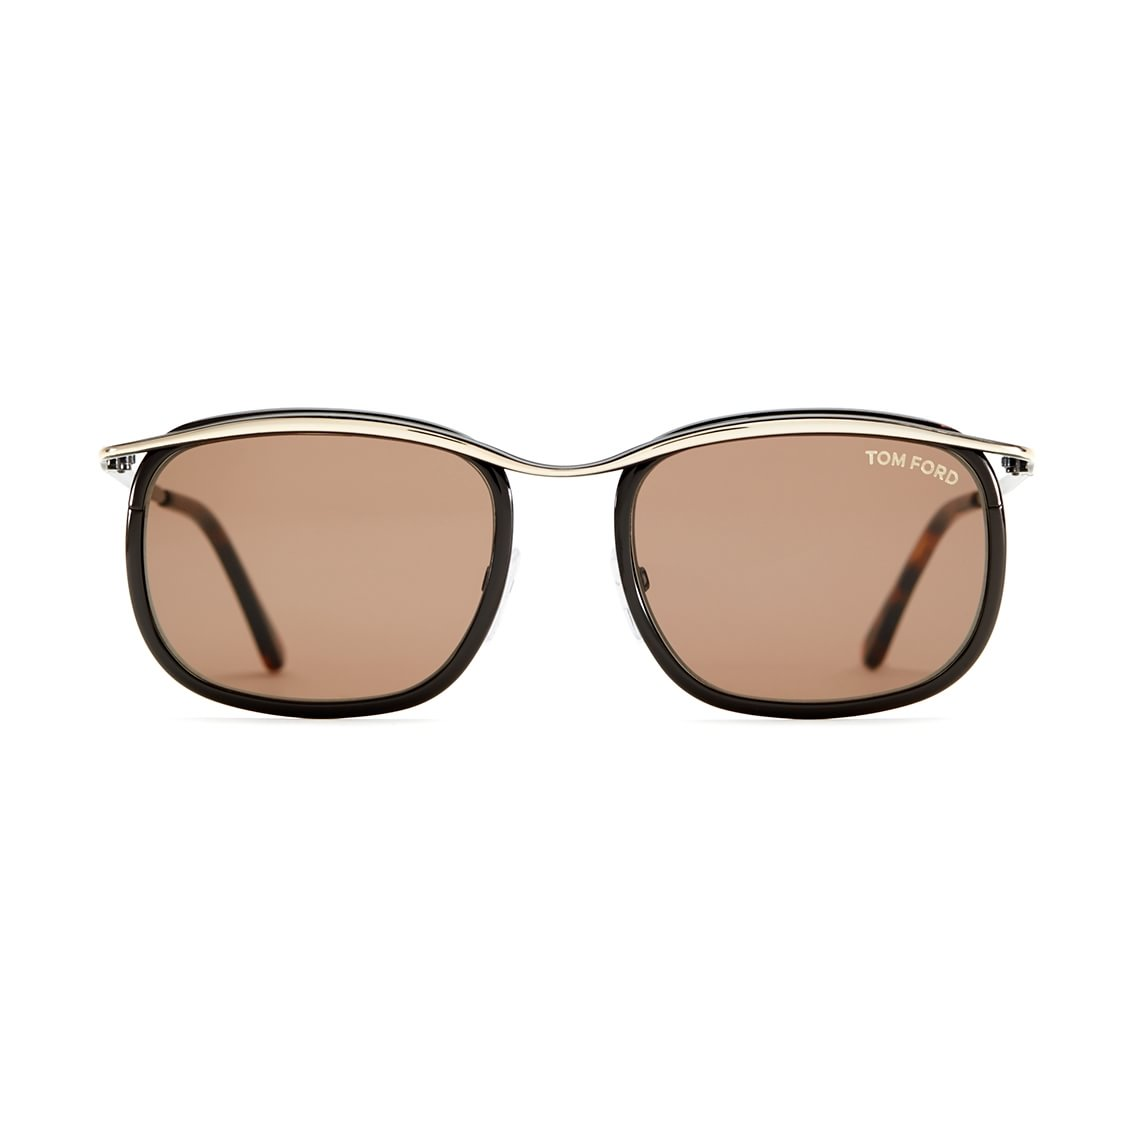 Tom Ford TF419 50J 53